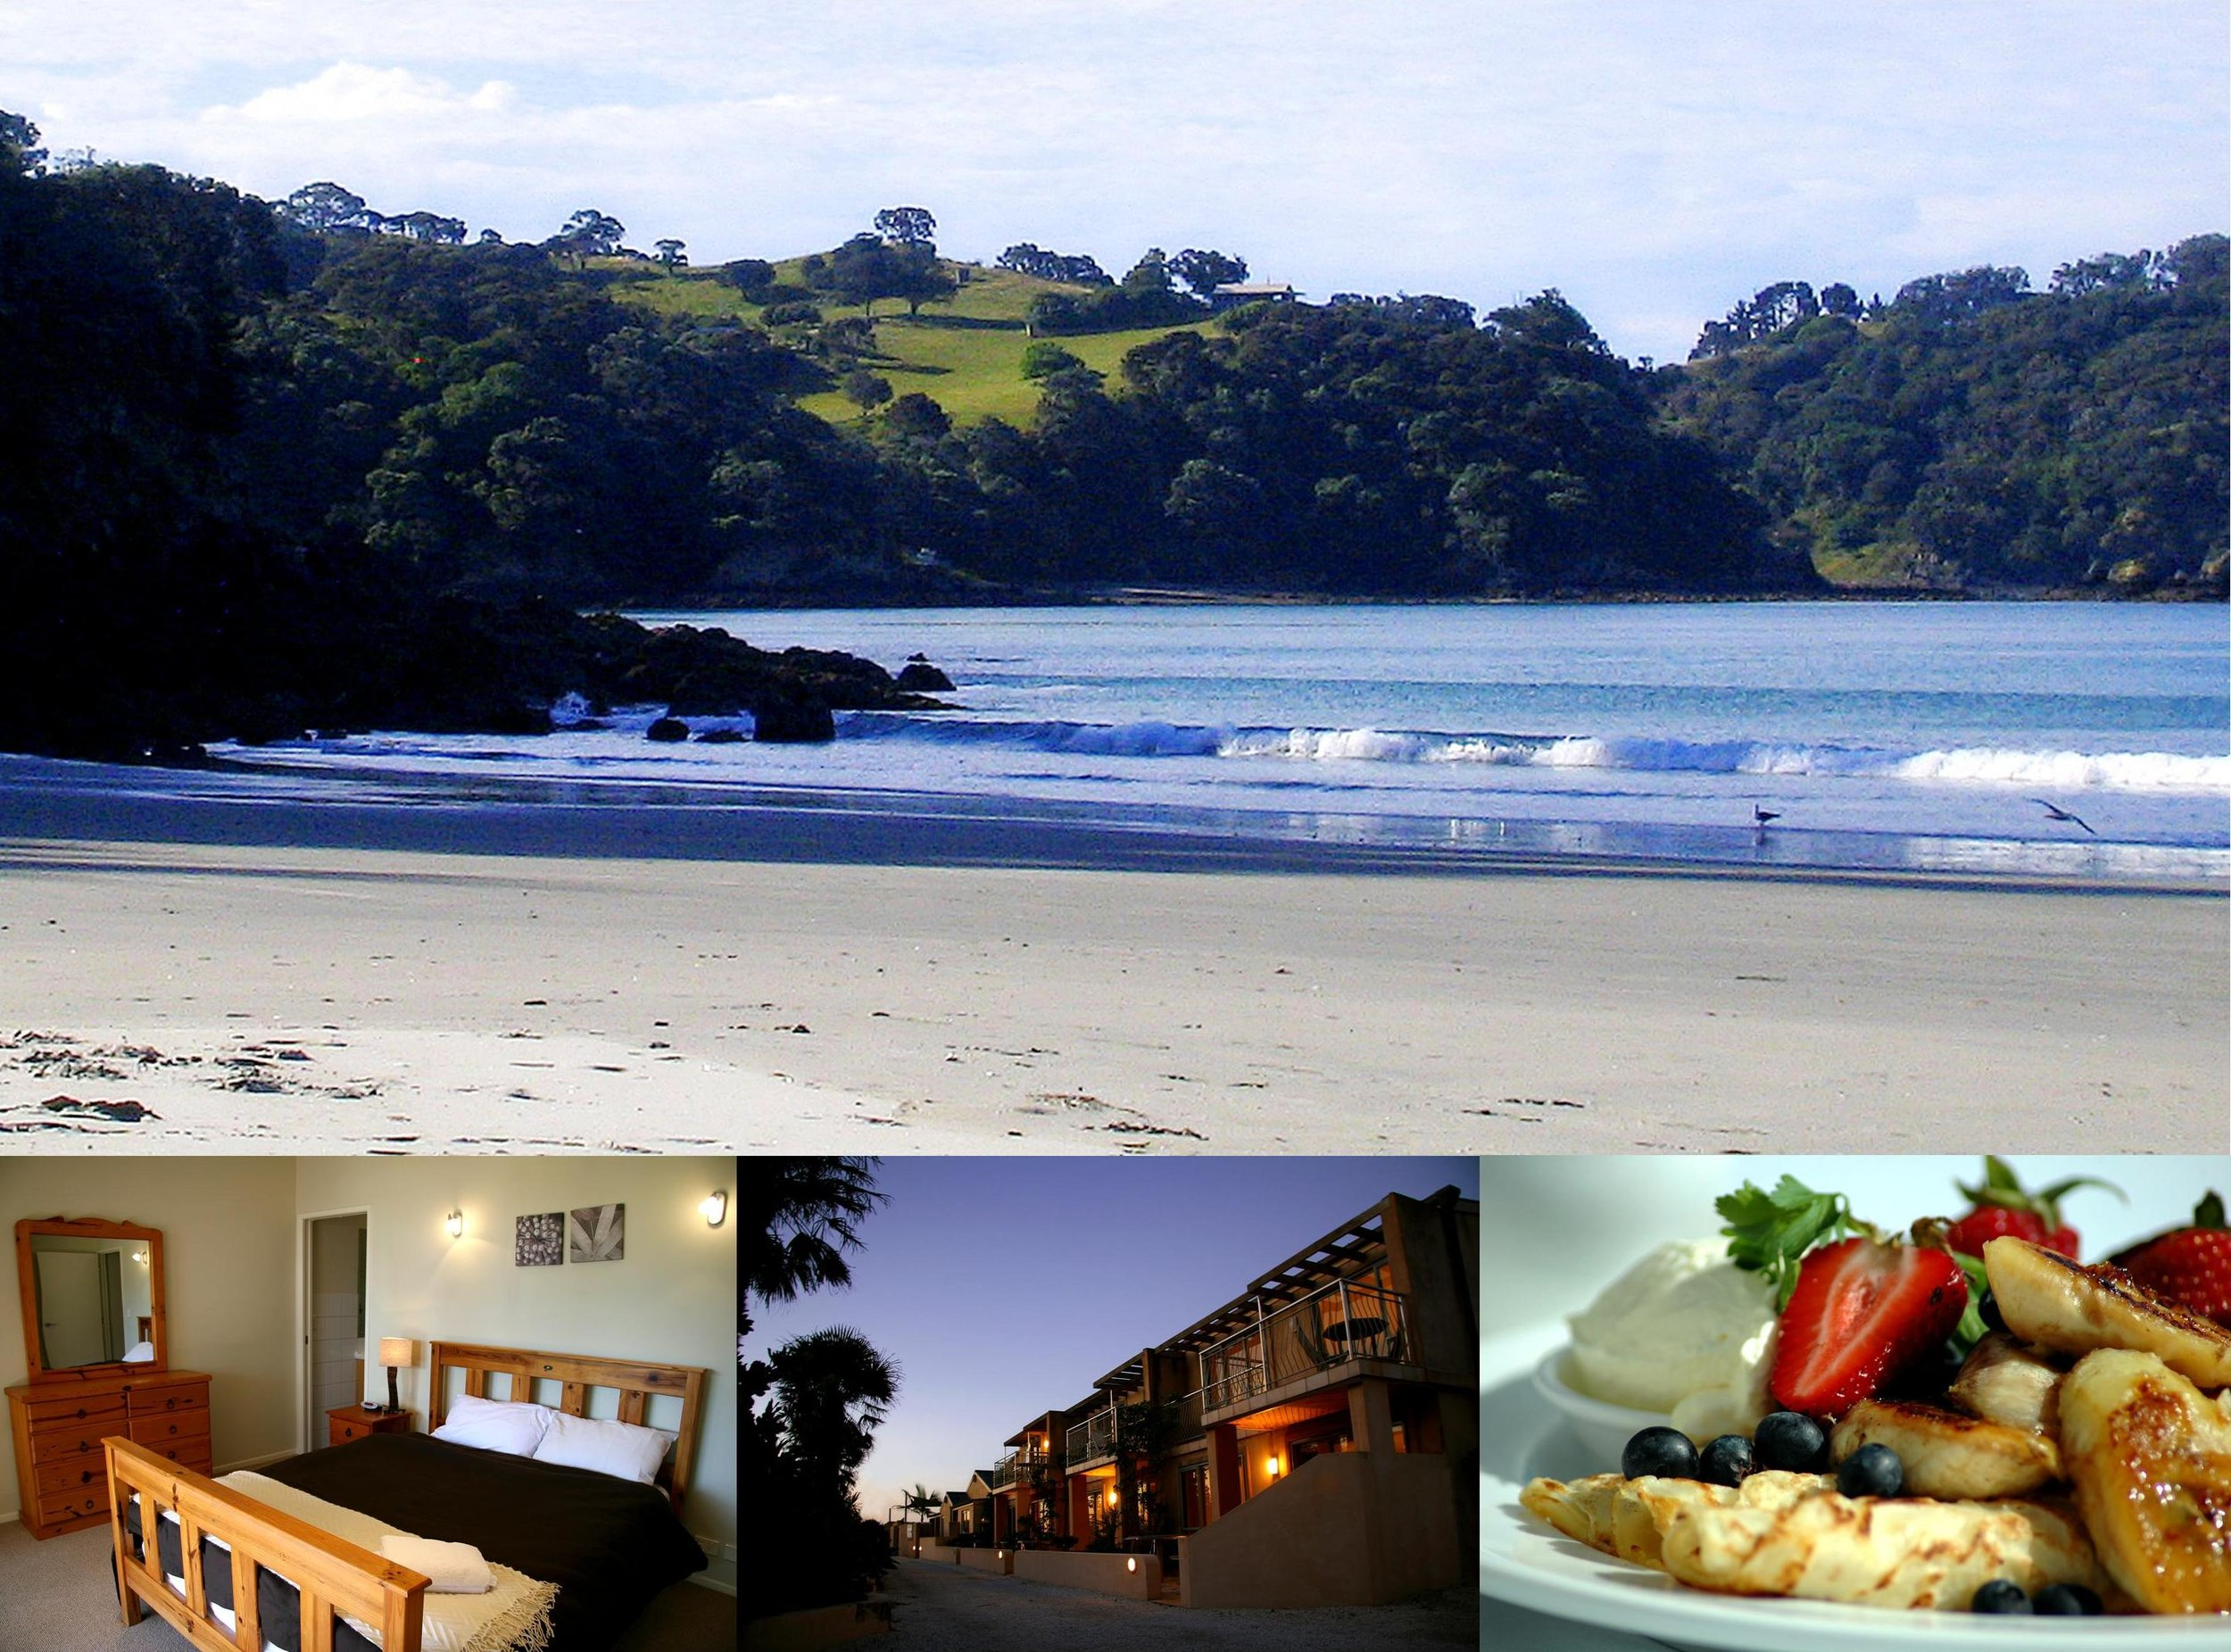 Onetangi Beach Apartments  two nights accommodation (value way over $400). This is located on the best beach on what is rated as one of the best Islands in the world and you get to stay here with your partner for a couple of nights….heaven